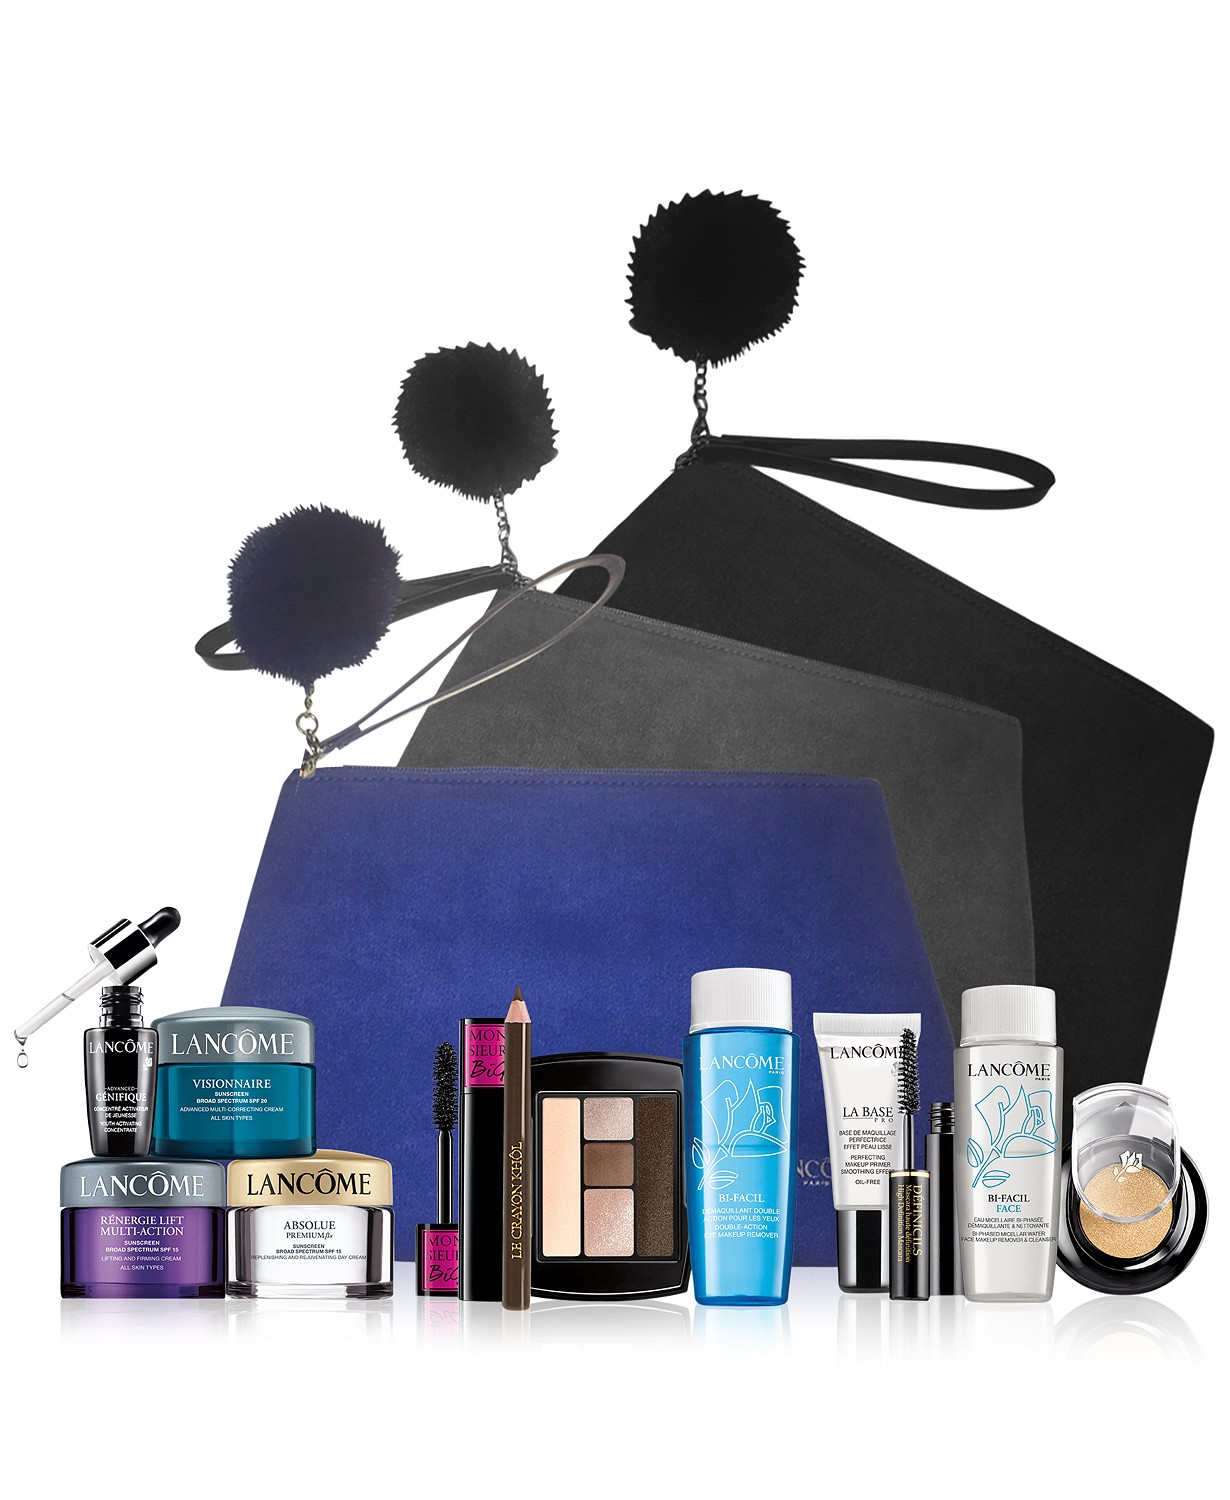 MACYS SPECIAL! RECEIVE FREE 7-PIECE LANCOME GIFT WORTH $126 WHEN YOU SPEND $37.5!